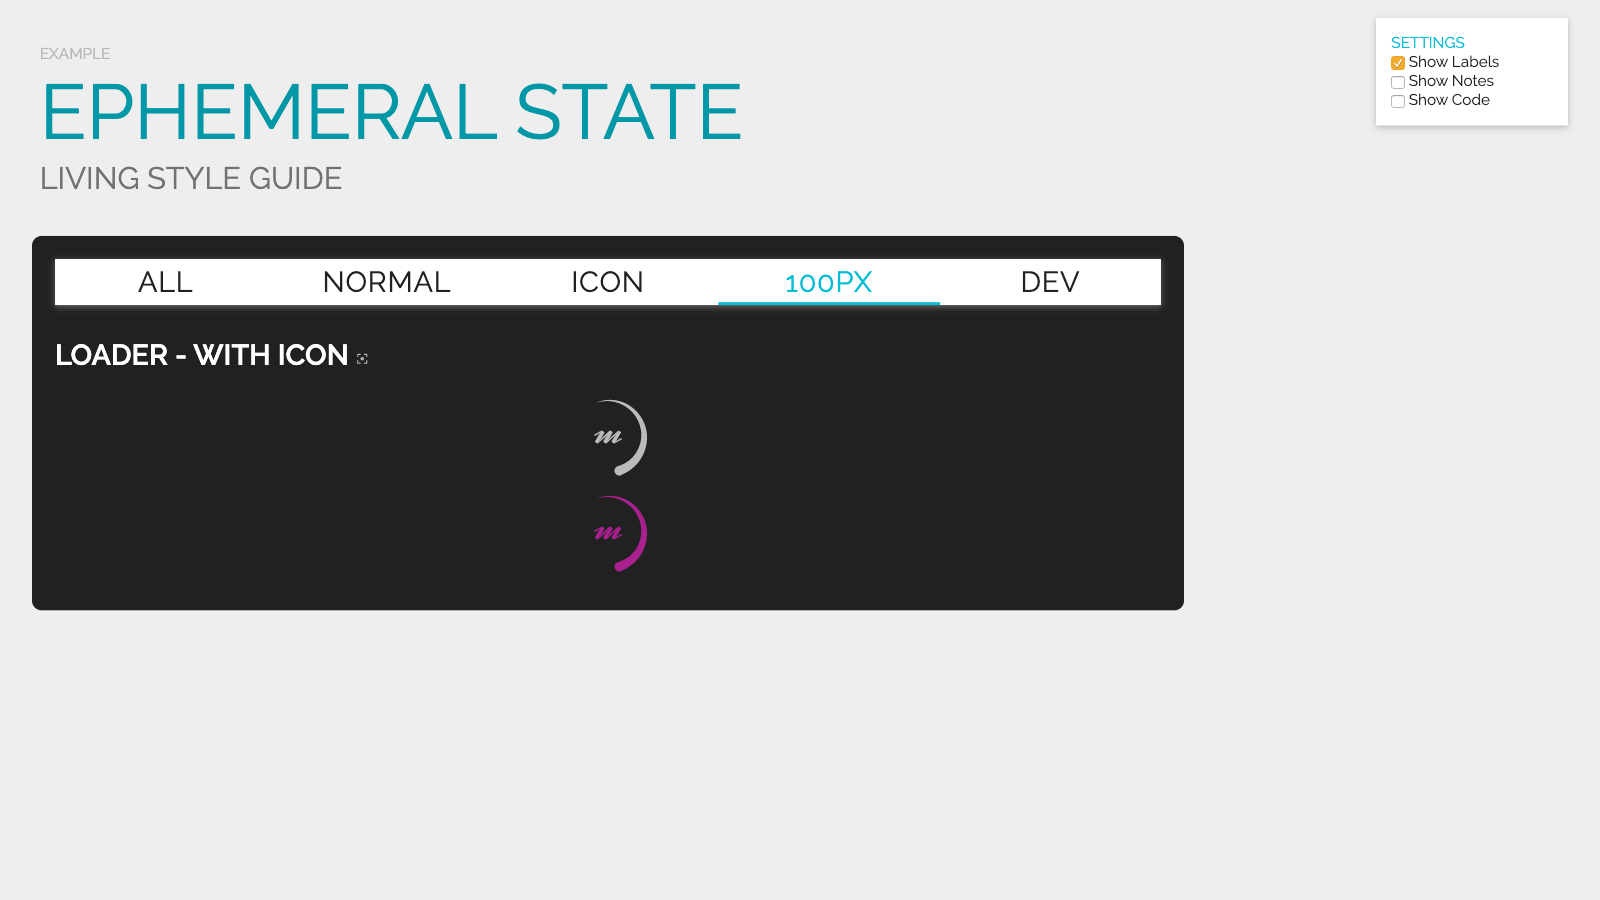 Slide content, Presenting ephemeral state in a living style guide